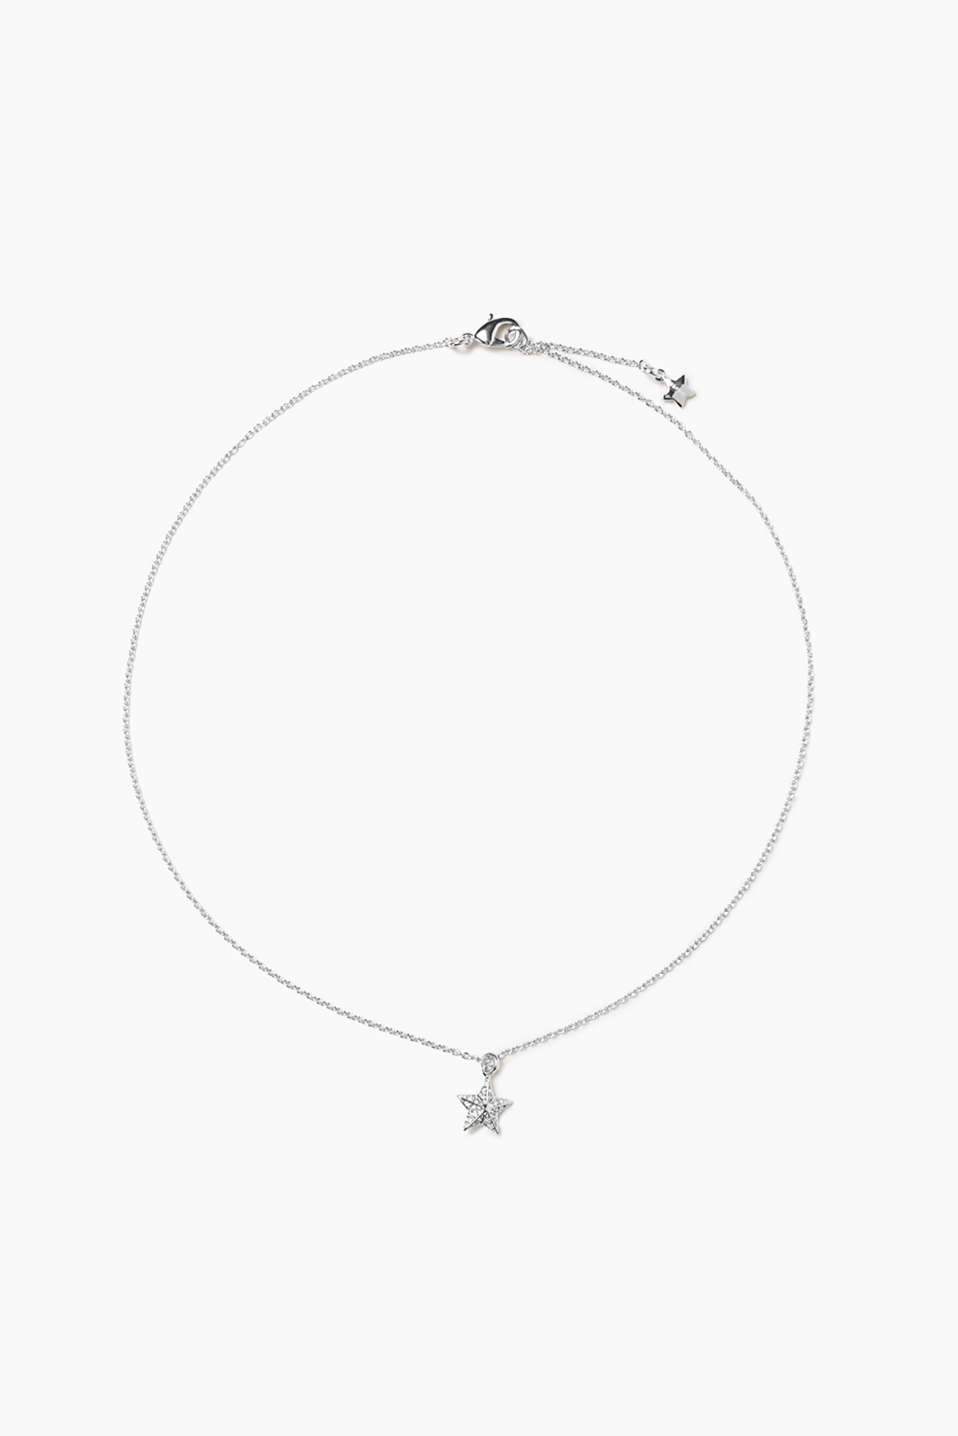 Metal / zirconia necklace with star pendant